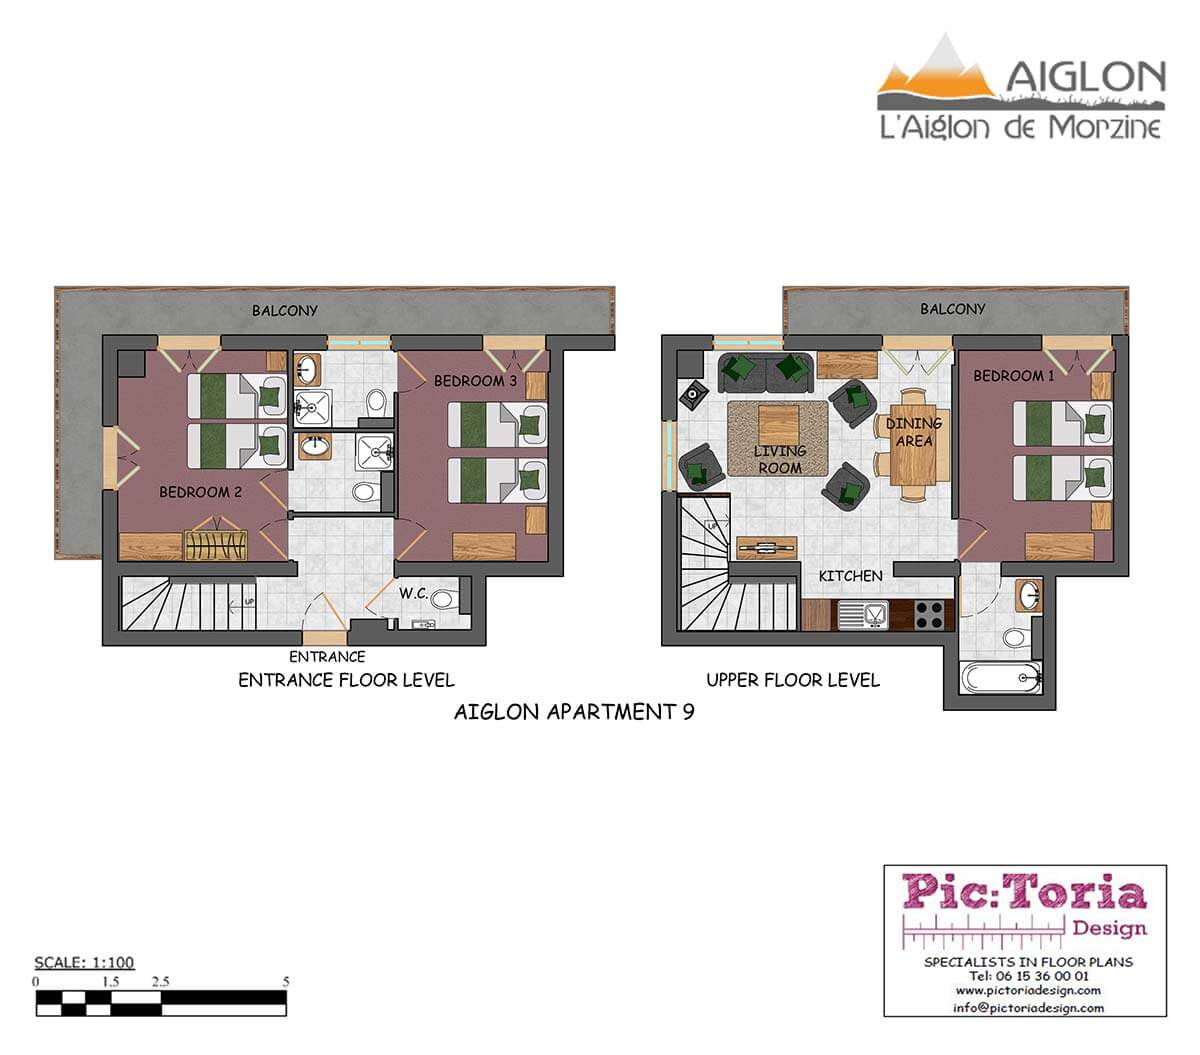 Image of Morzine 3 Bedroom Apartment, floor plan #9